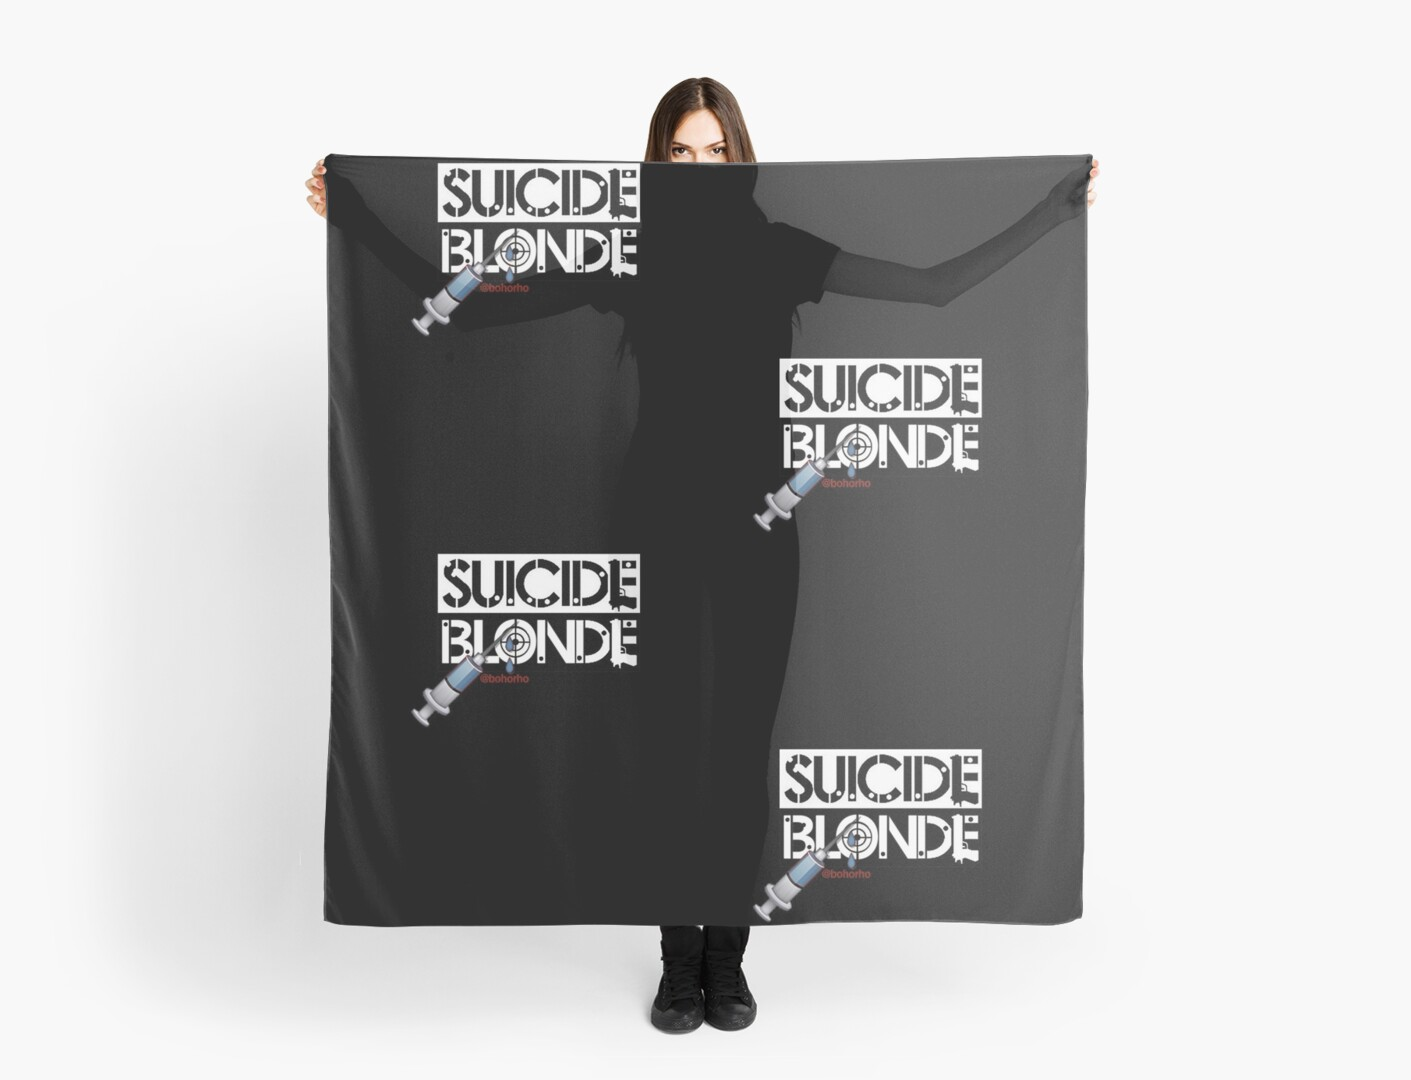 Suicide Blonde (Bleach Syringeon Black) by BohoRho